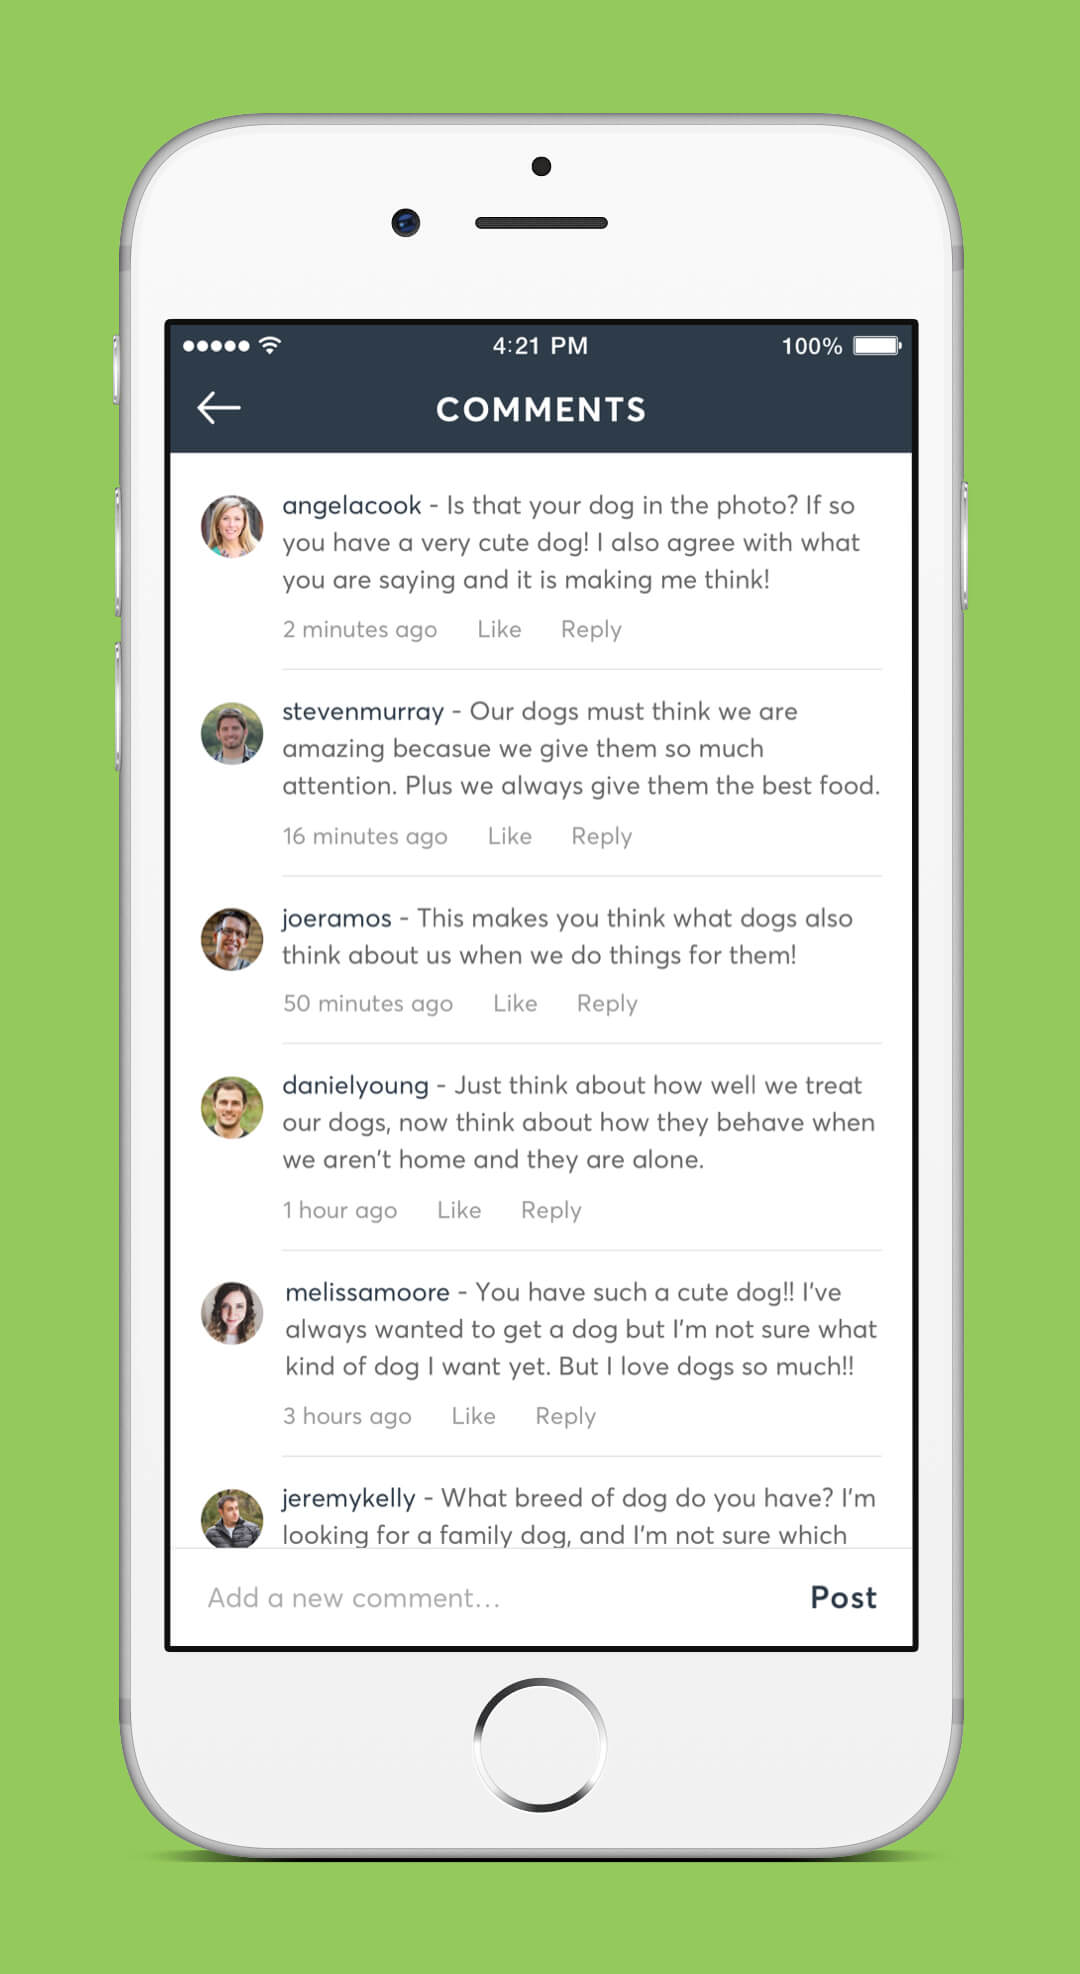 Instagram Redesign - Comments Screen